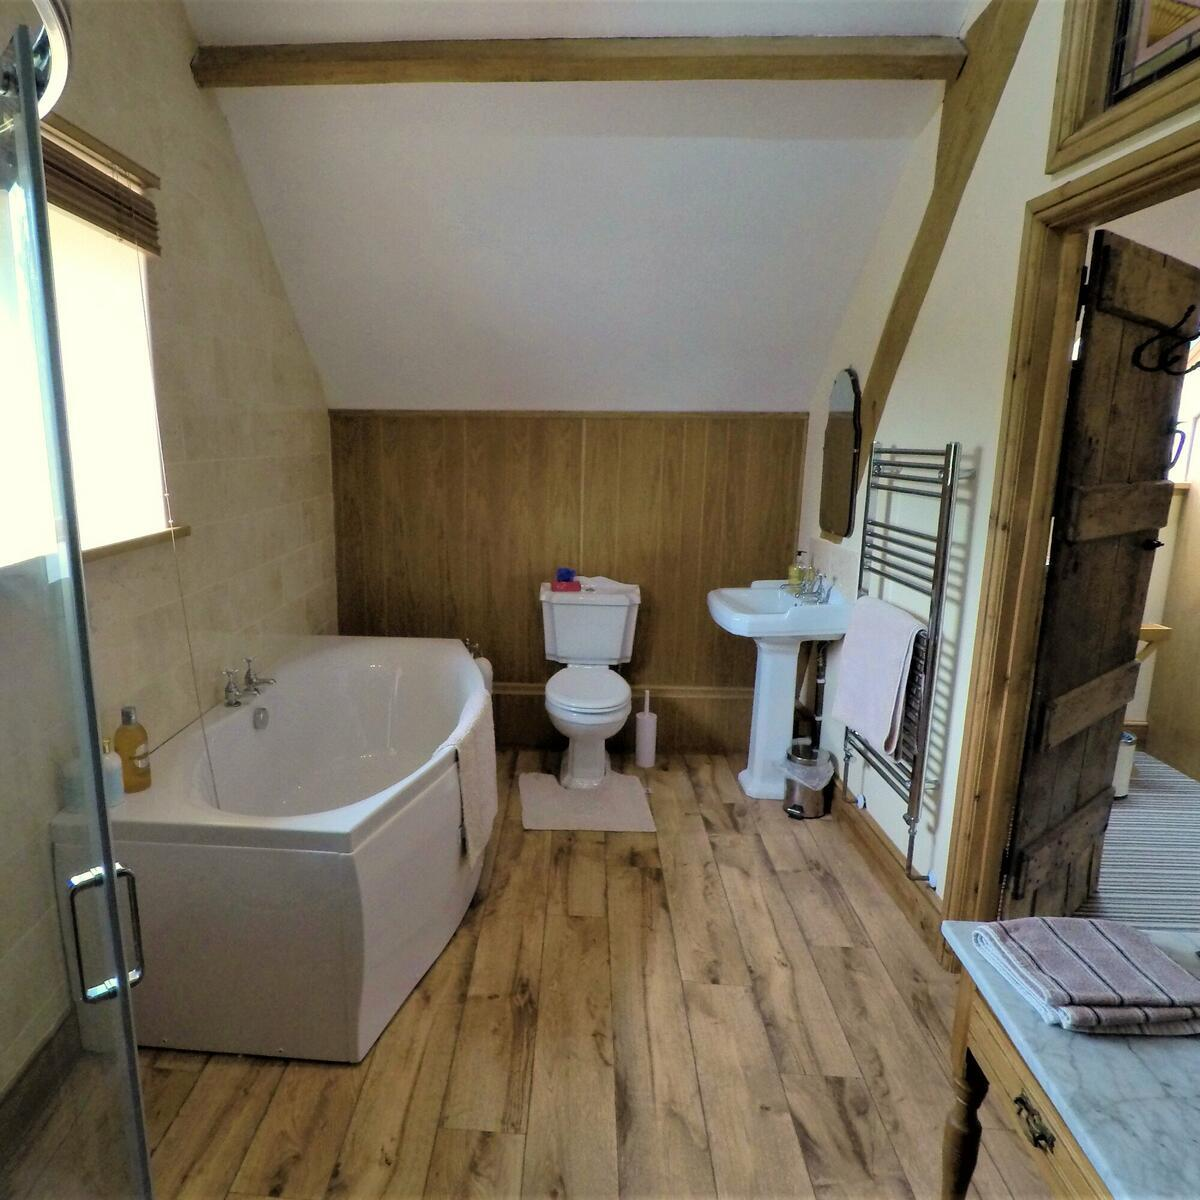 Newly renovated ensuite facilities